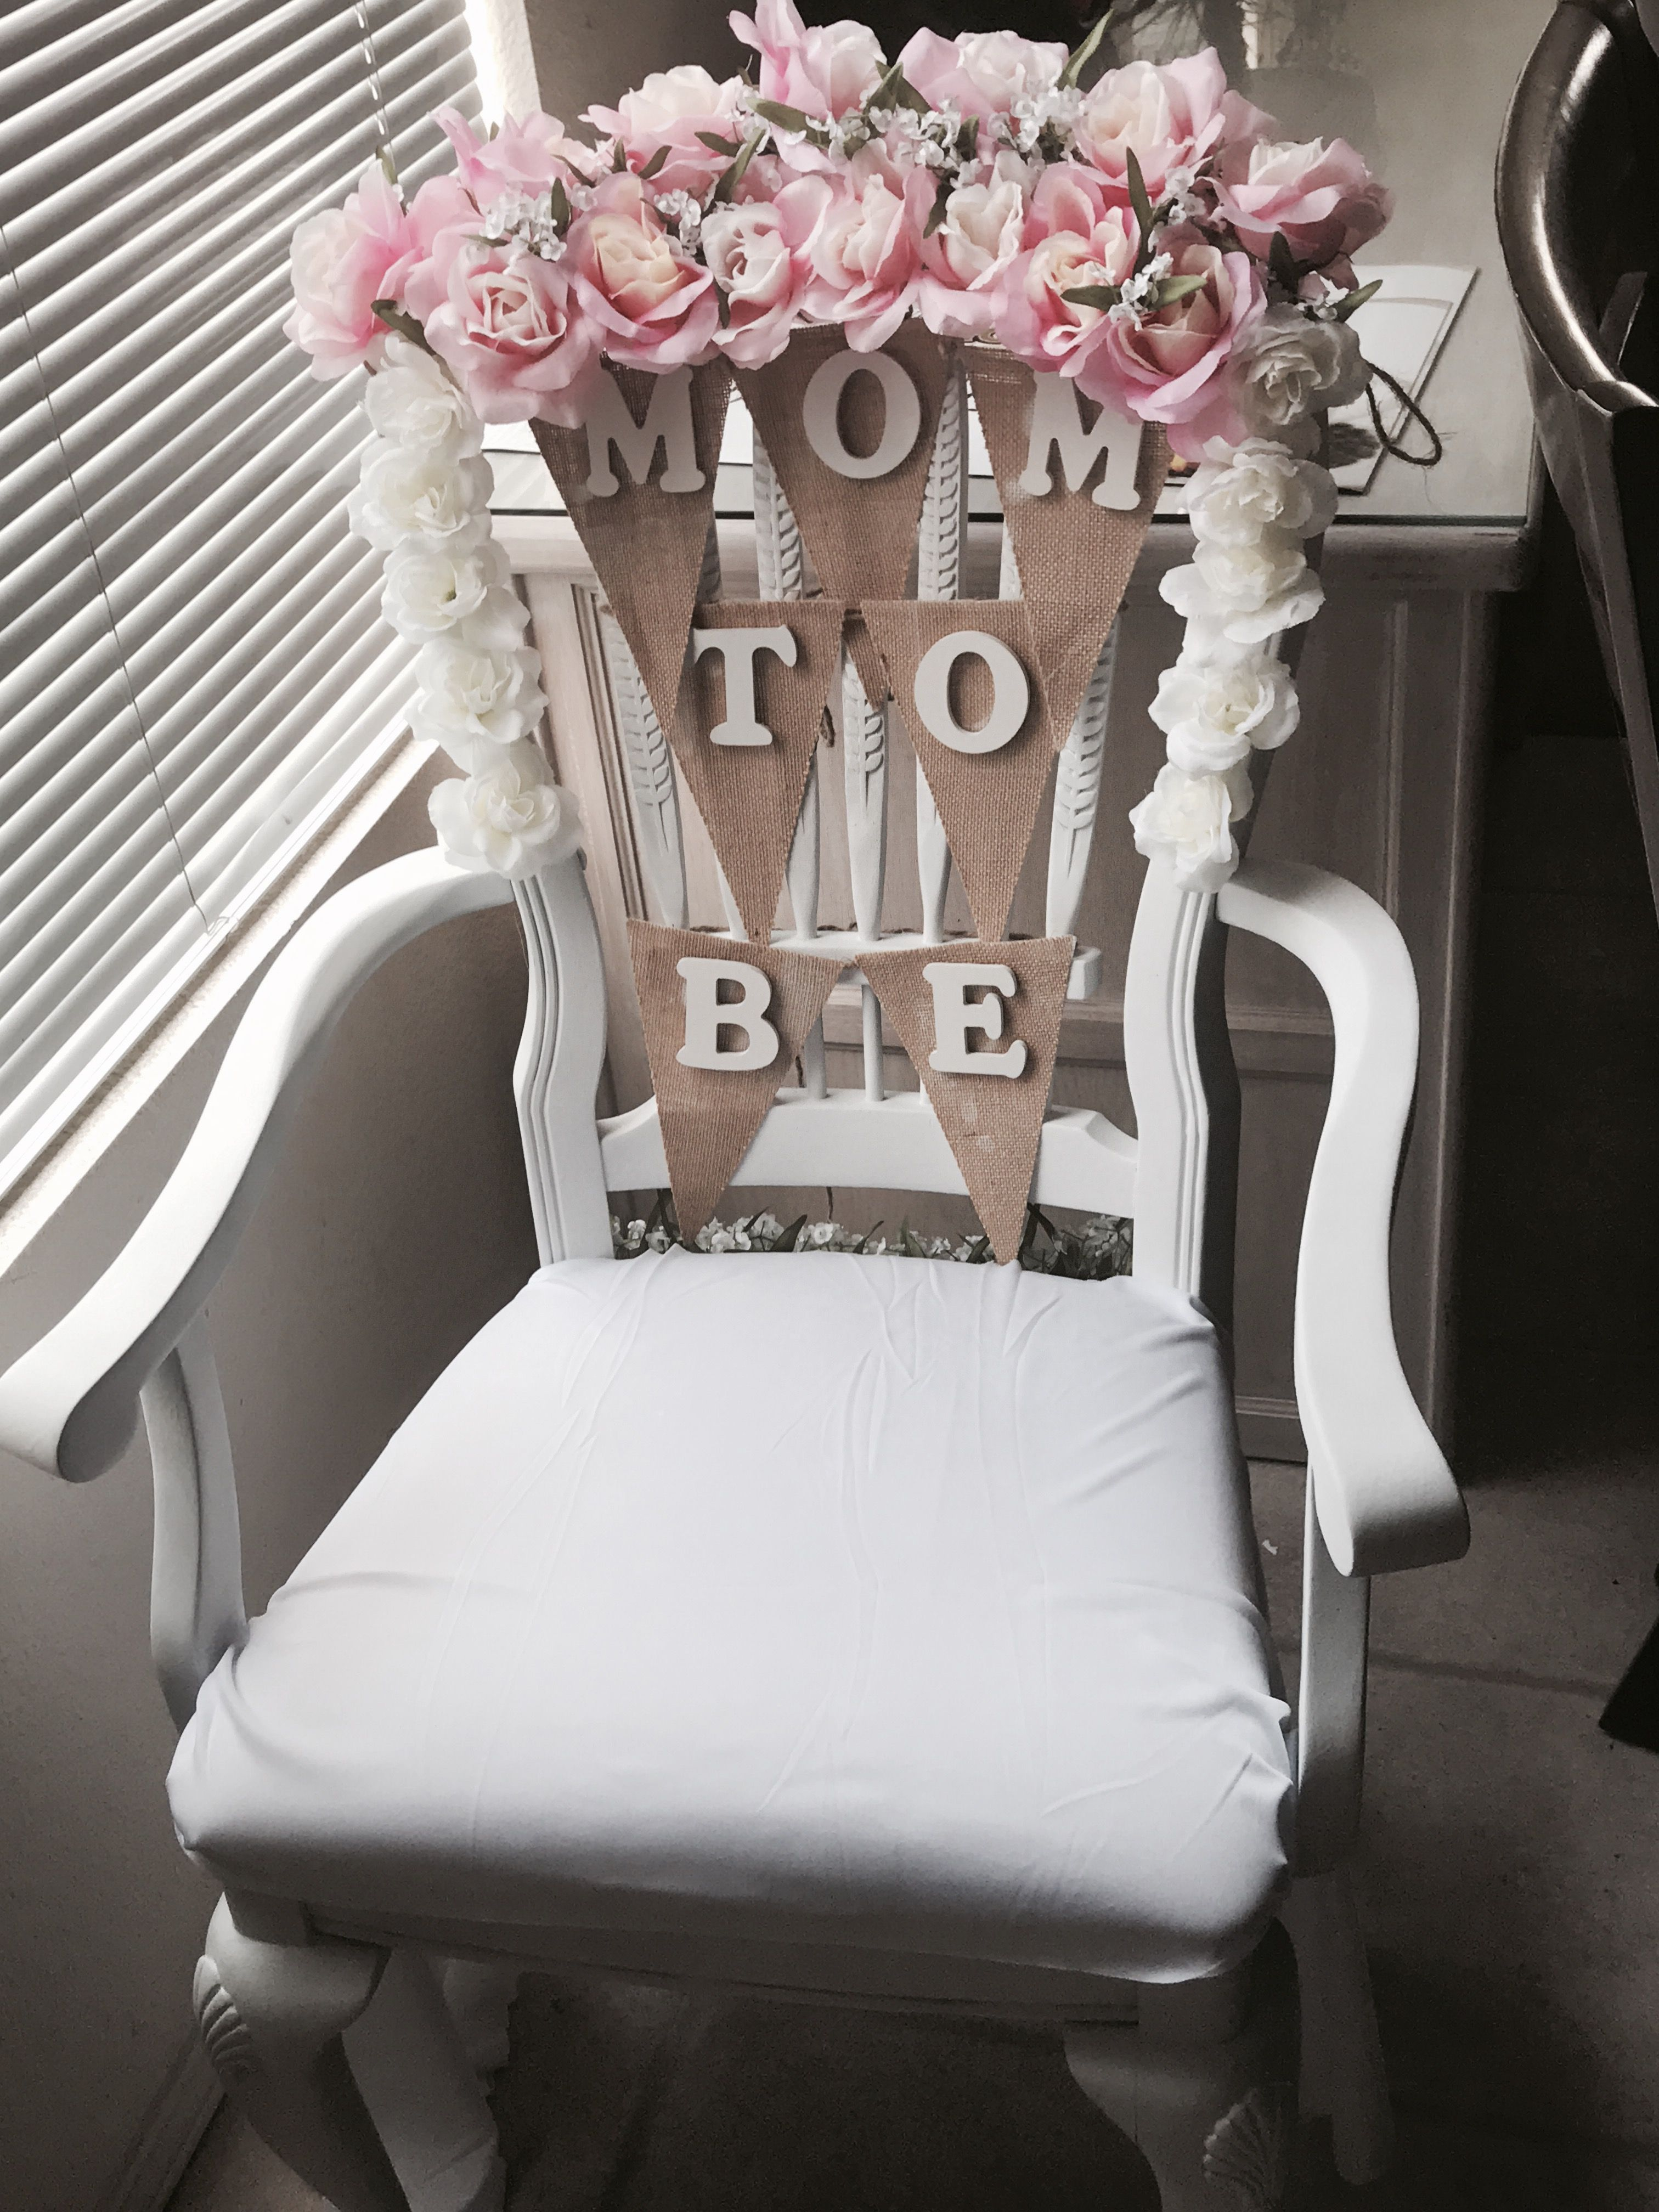 Baby Shower Chair Baby Shower Chair Idea Flowers From Walmart Wood